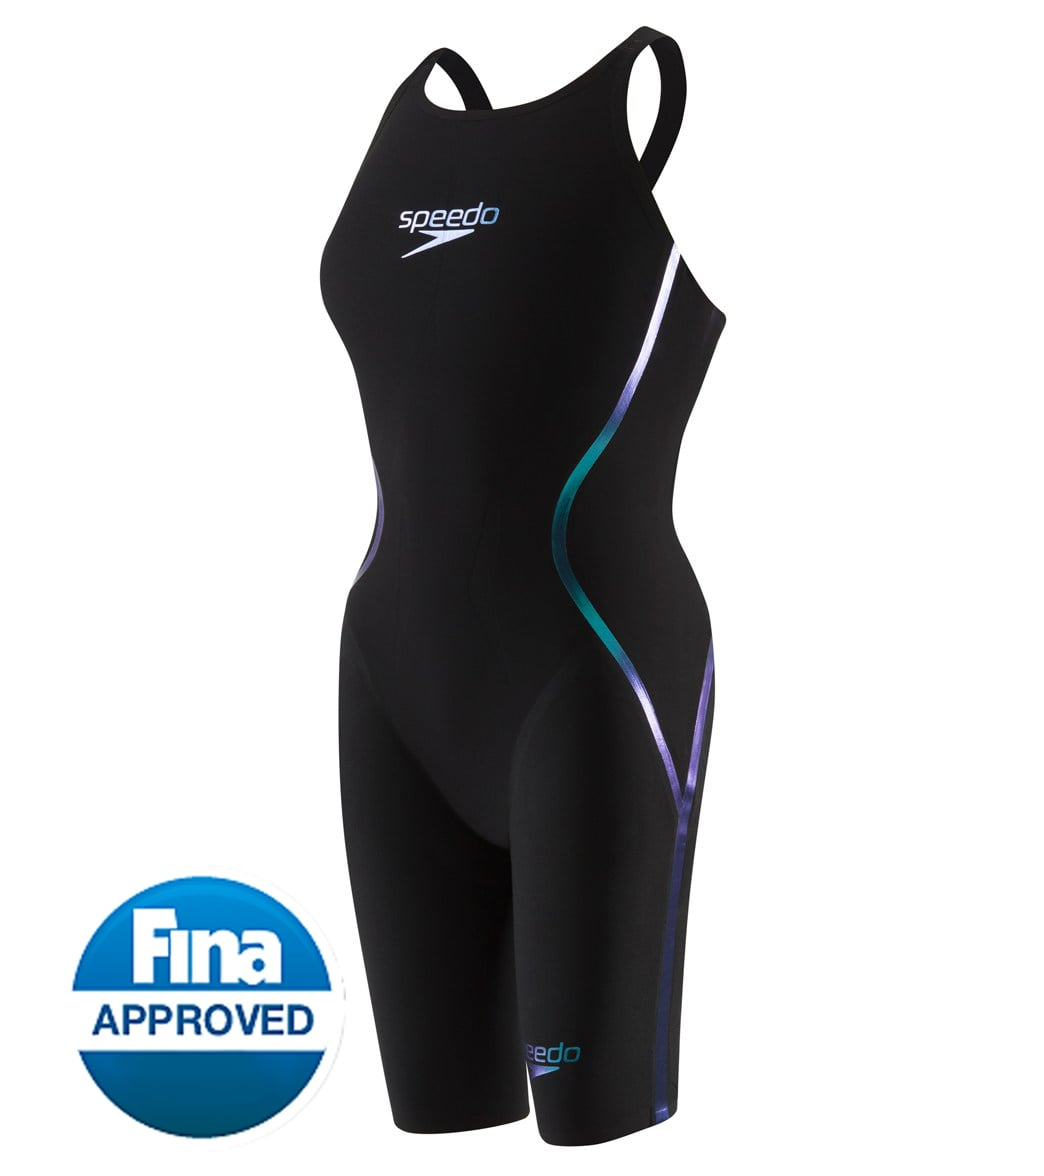 24112e2a40 Speedo Women s LZR Racer X Closed Back Kneeskin Tech Suit Swimsuit at  SwimOutlet.com - Free Shipping